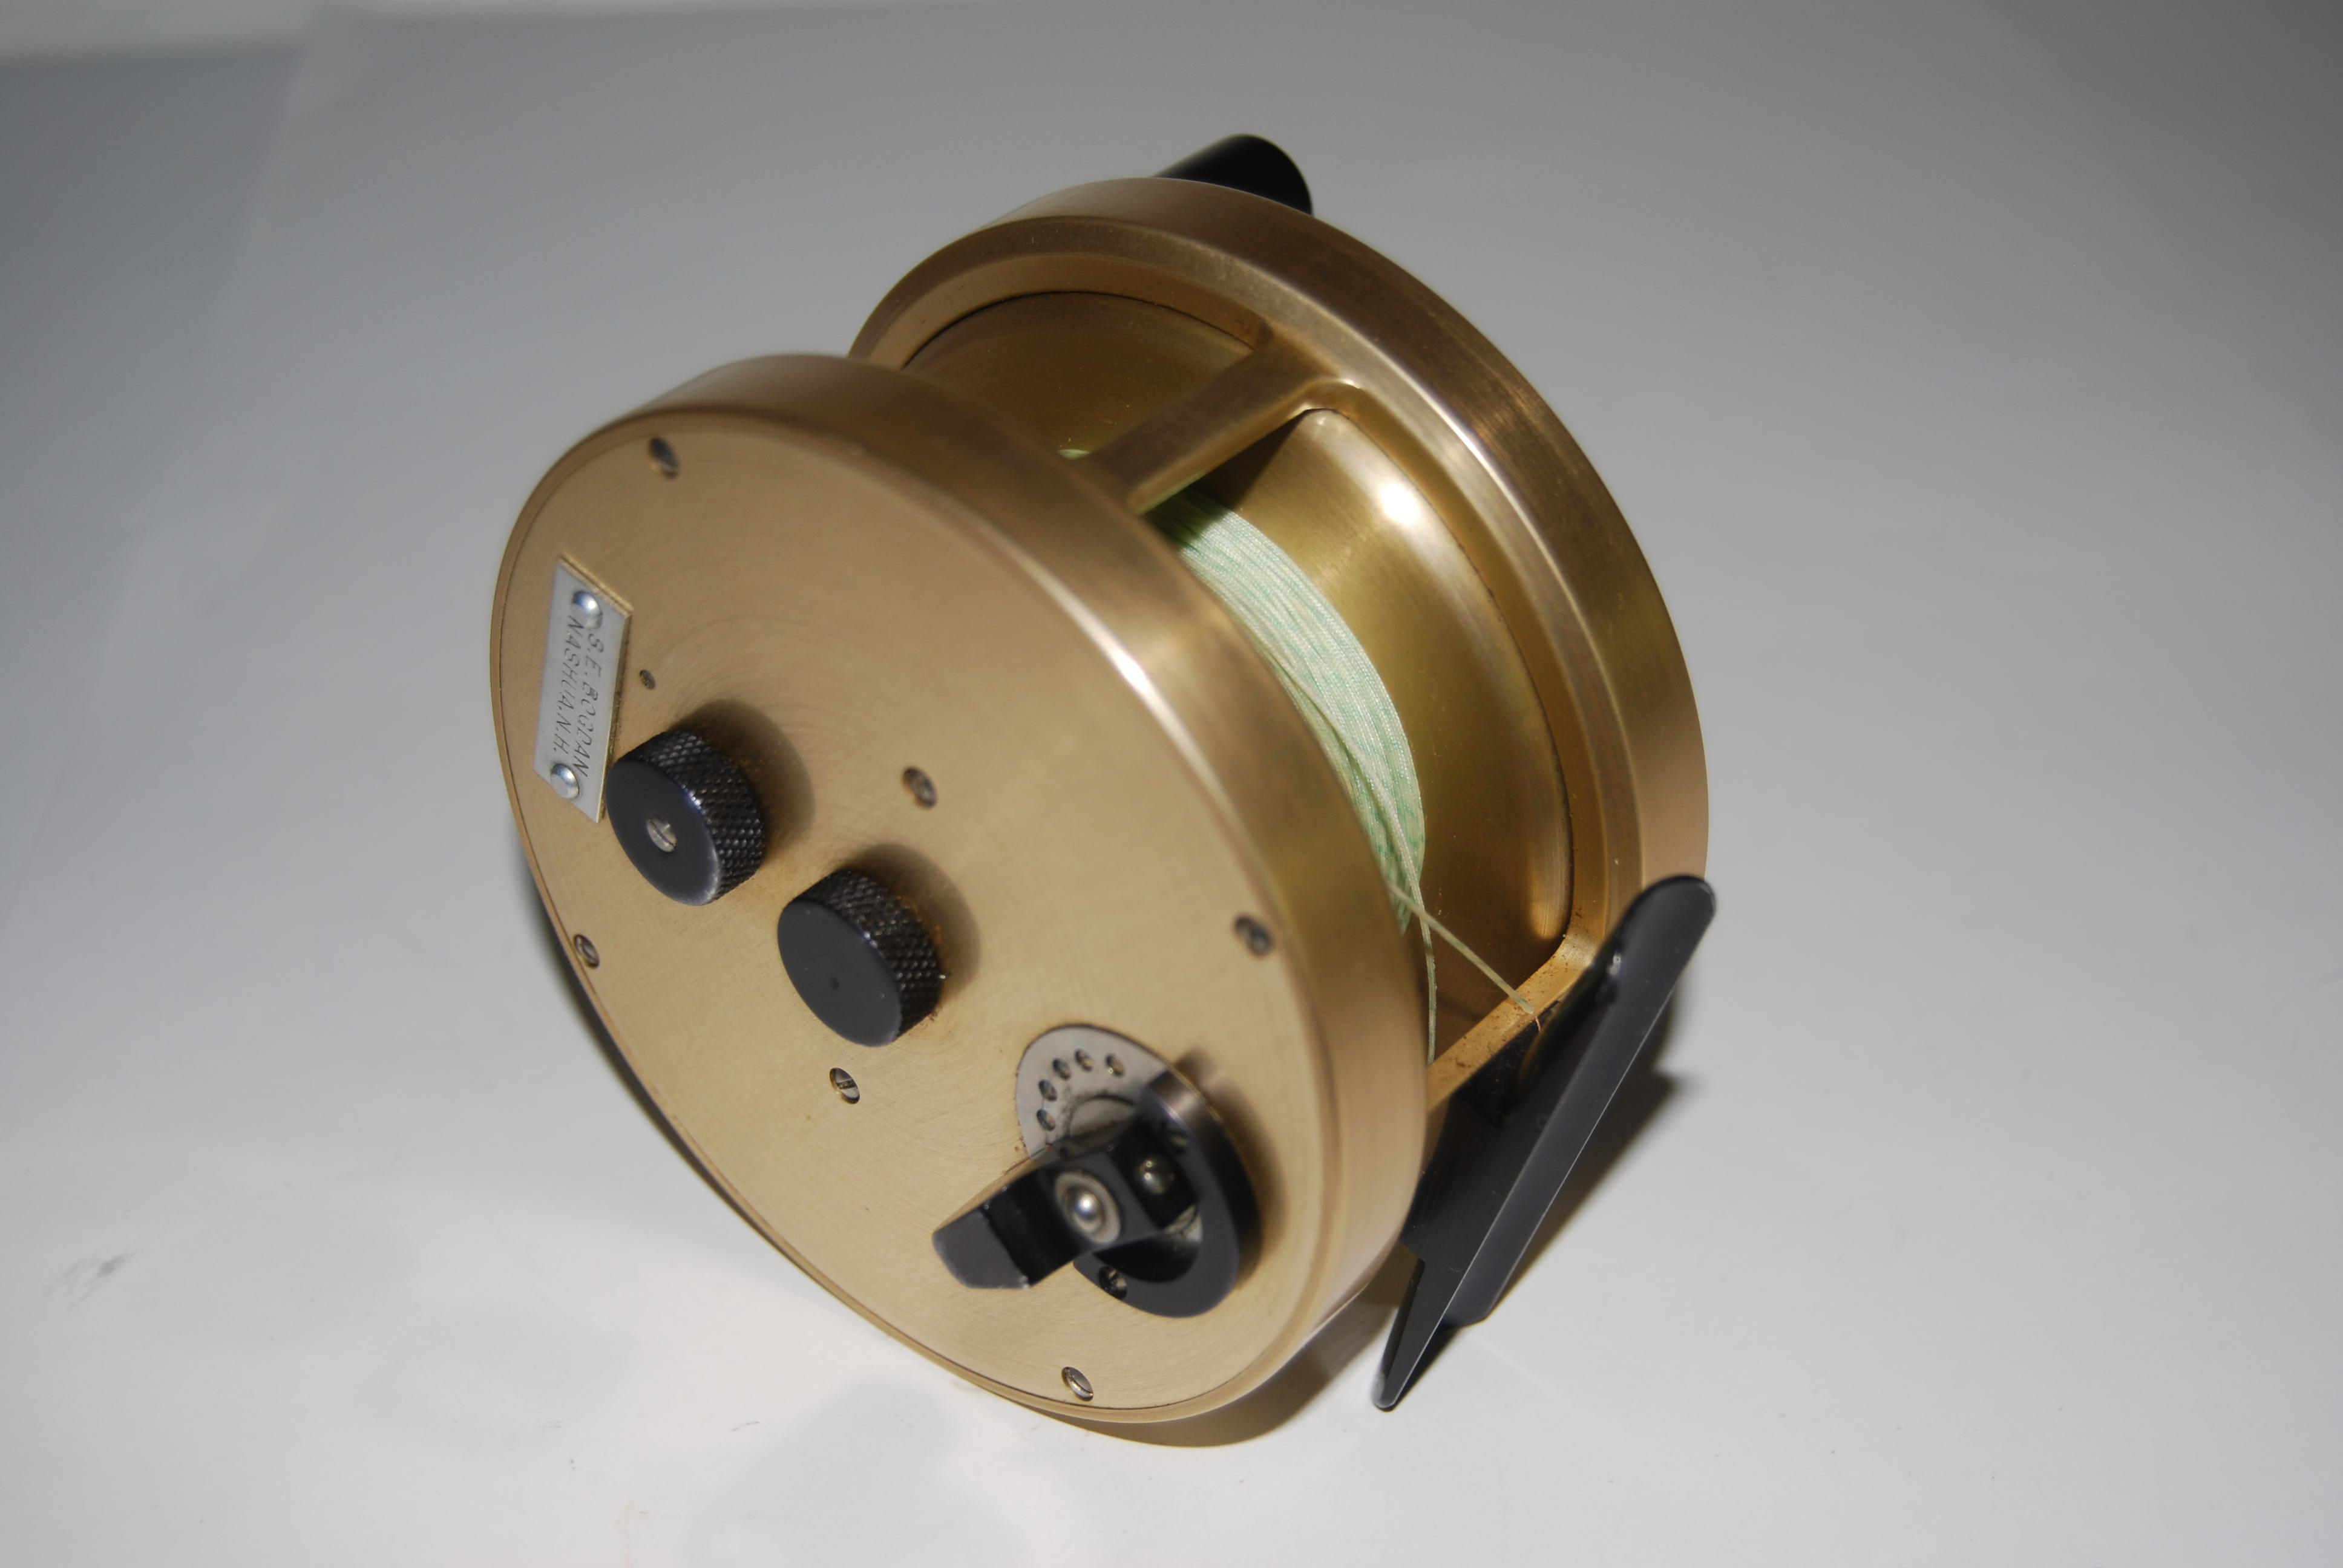 "Image for 3 3/4"" BOGDAN Model 200-M. Salmon Reel.  RHW.  12.5 oz. Cap. WF10 + 180  yd. 2:1 Multiplier. Abercrombie & Fitch Light Gold Anodized Frame; Black Handle, Knob & Reel Seat. In Abercrombie & Fitch Block Leather Reel Case."